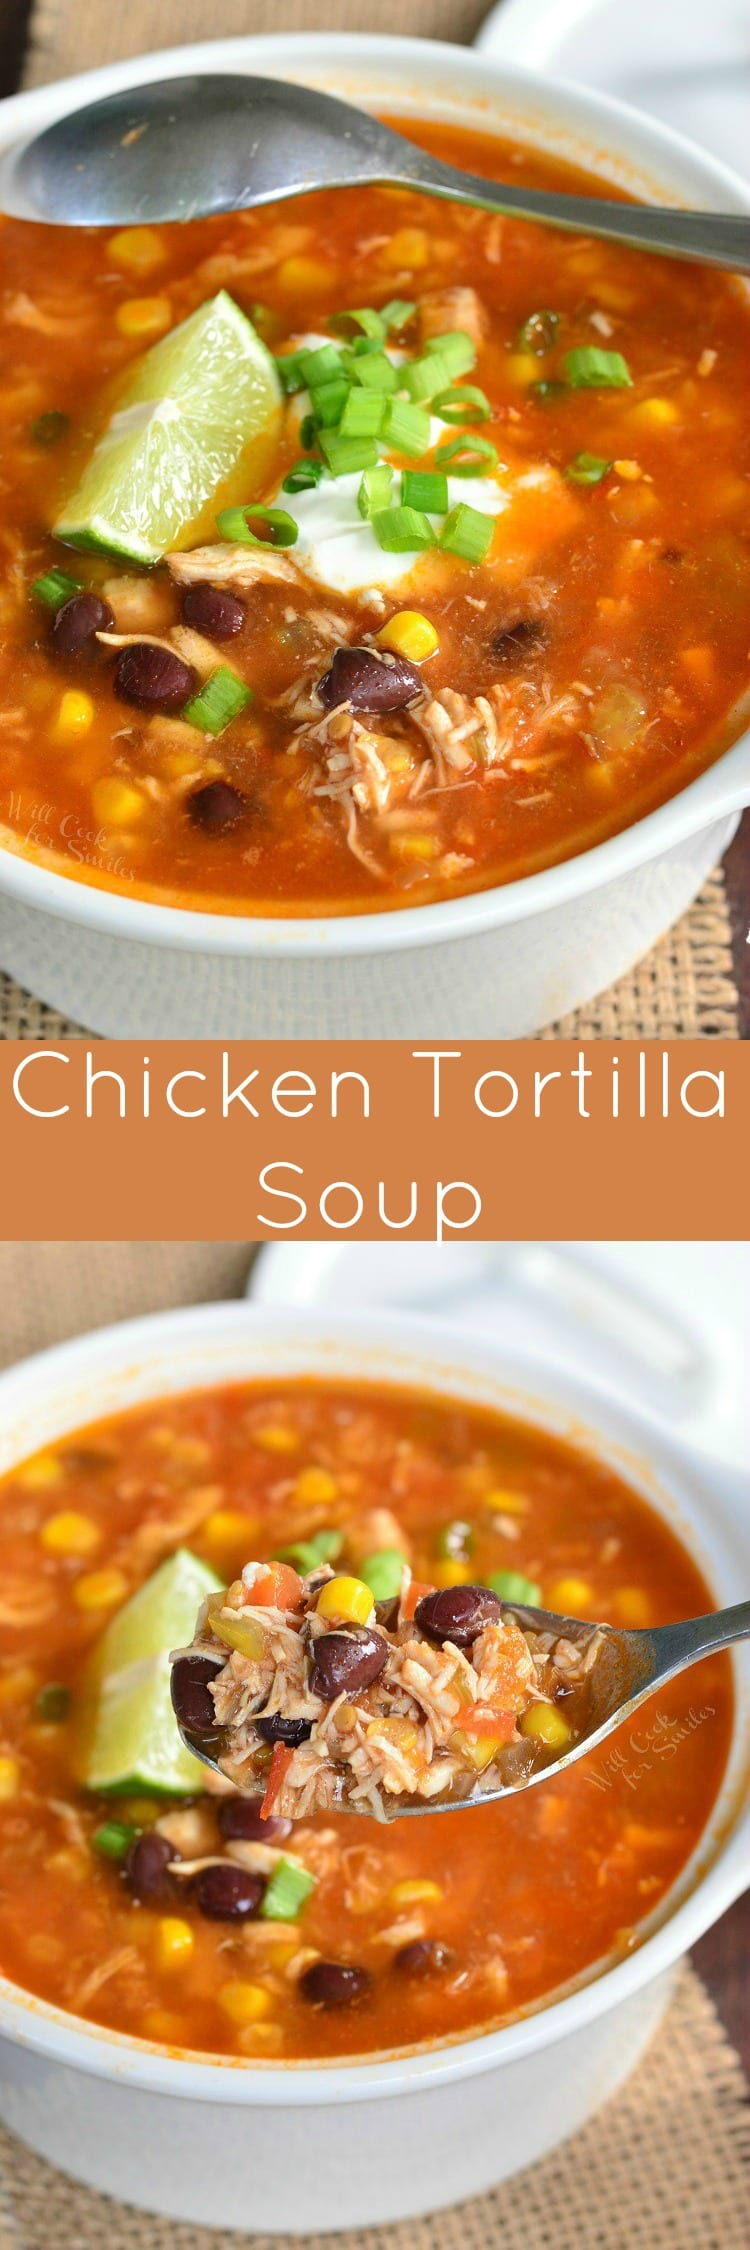 Chicken Tortilla Soup. This homemade chicken soup is made from scratch, with tomato base, shredded chicken, veggies, and a spice kick. #soup #light #chicken #chickensoup